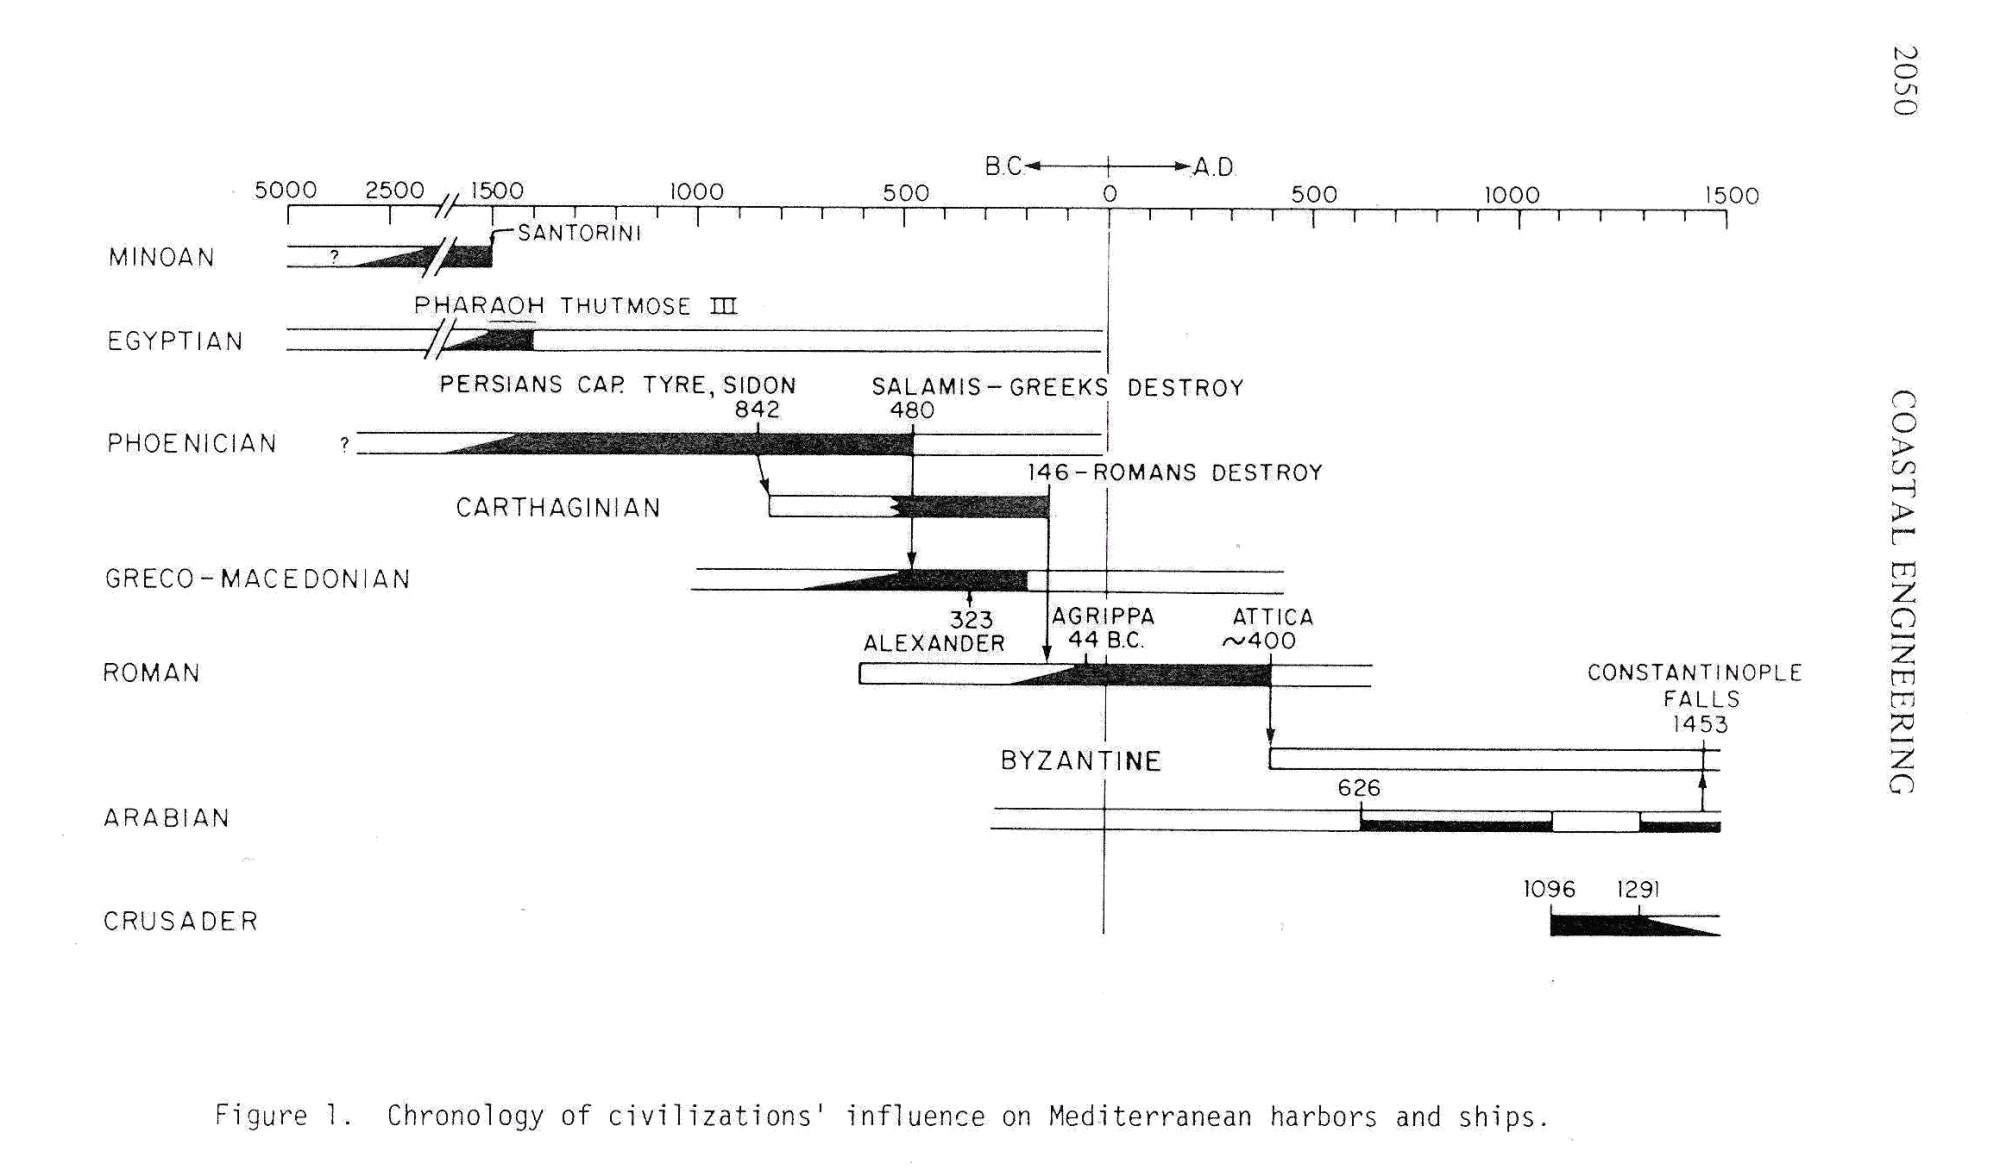 hight resolution of chronology of civilizations acc to inman in ancient and modern harbors a repeating